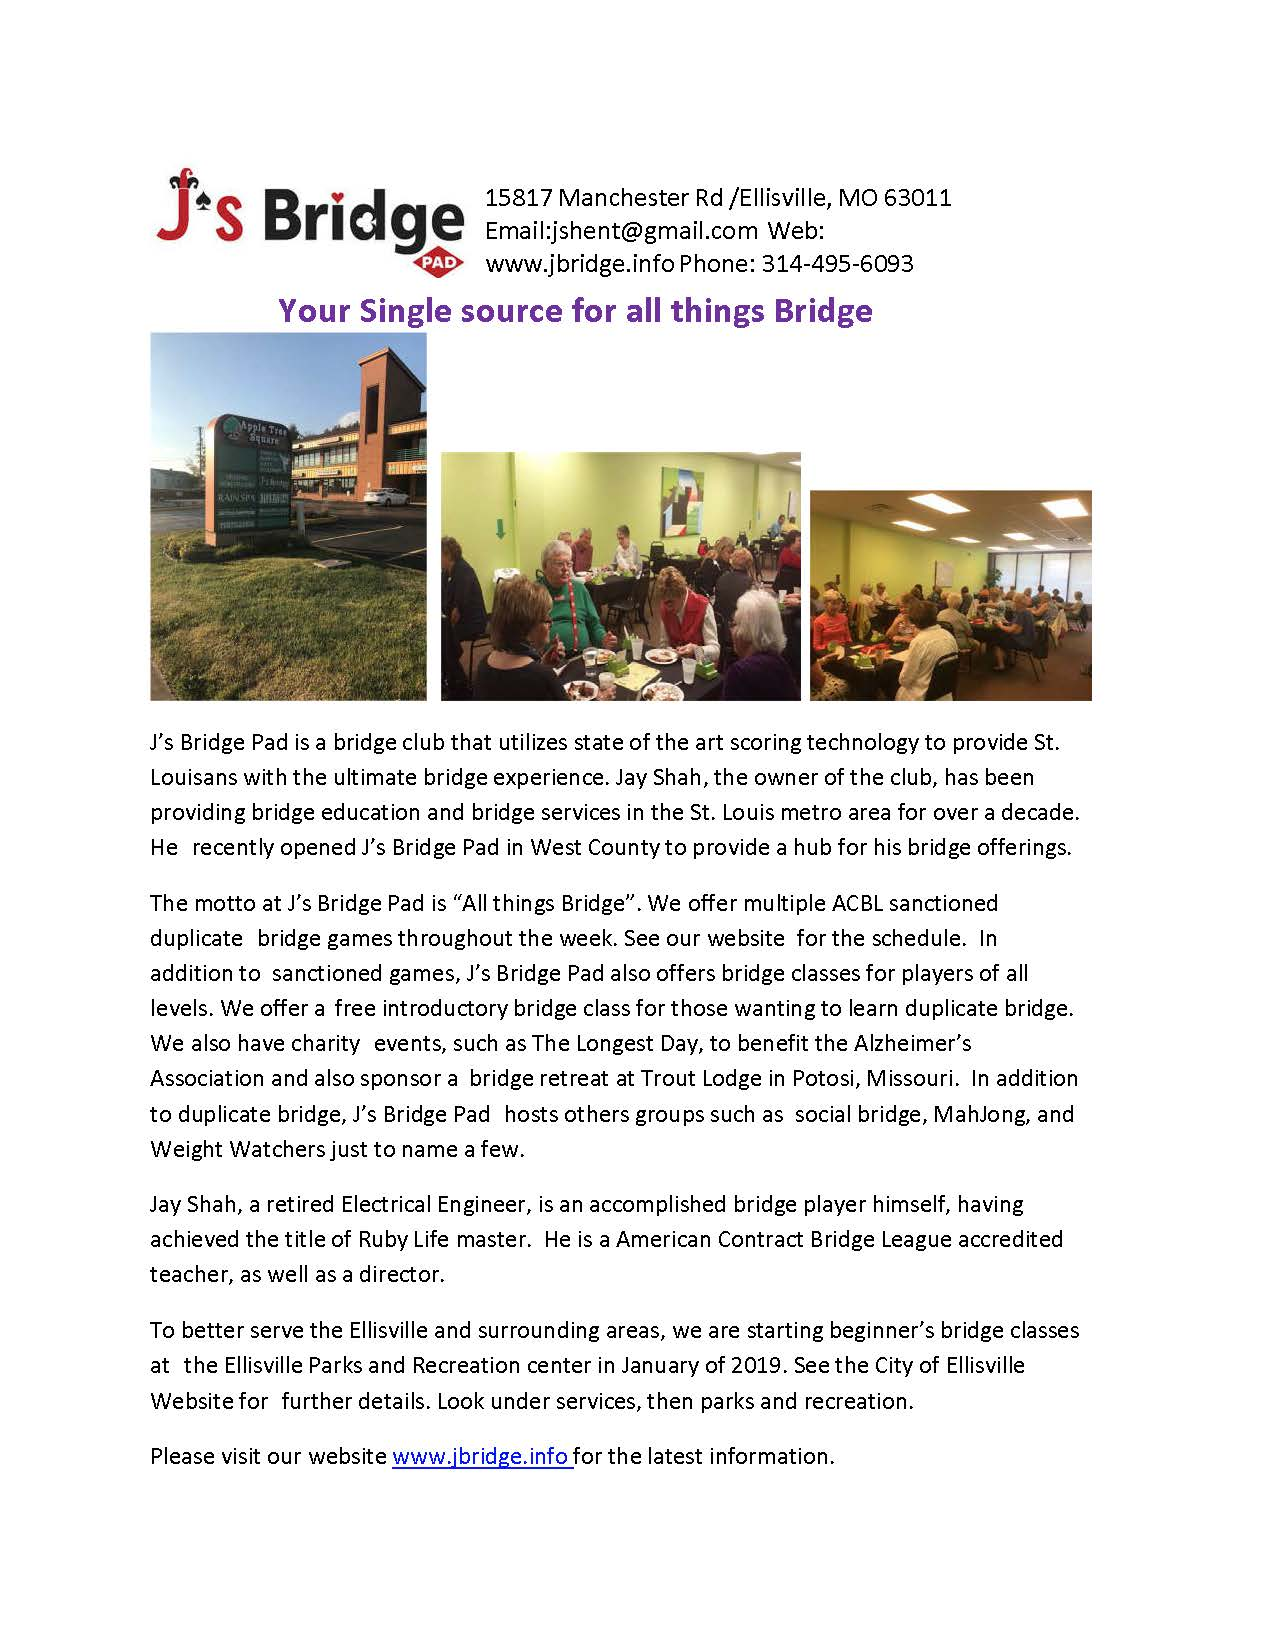 JS Bridge Brochure